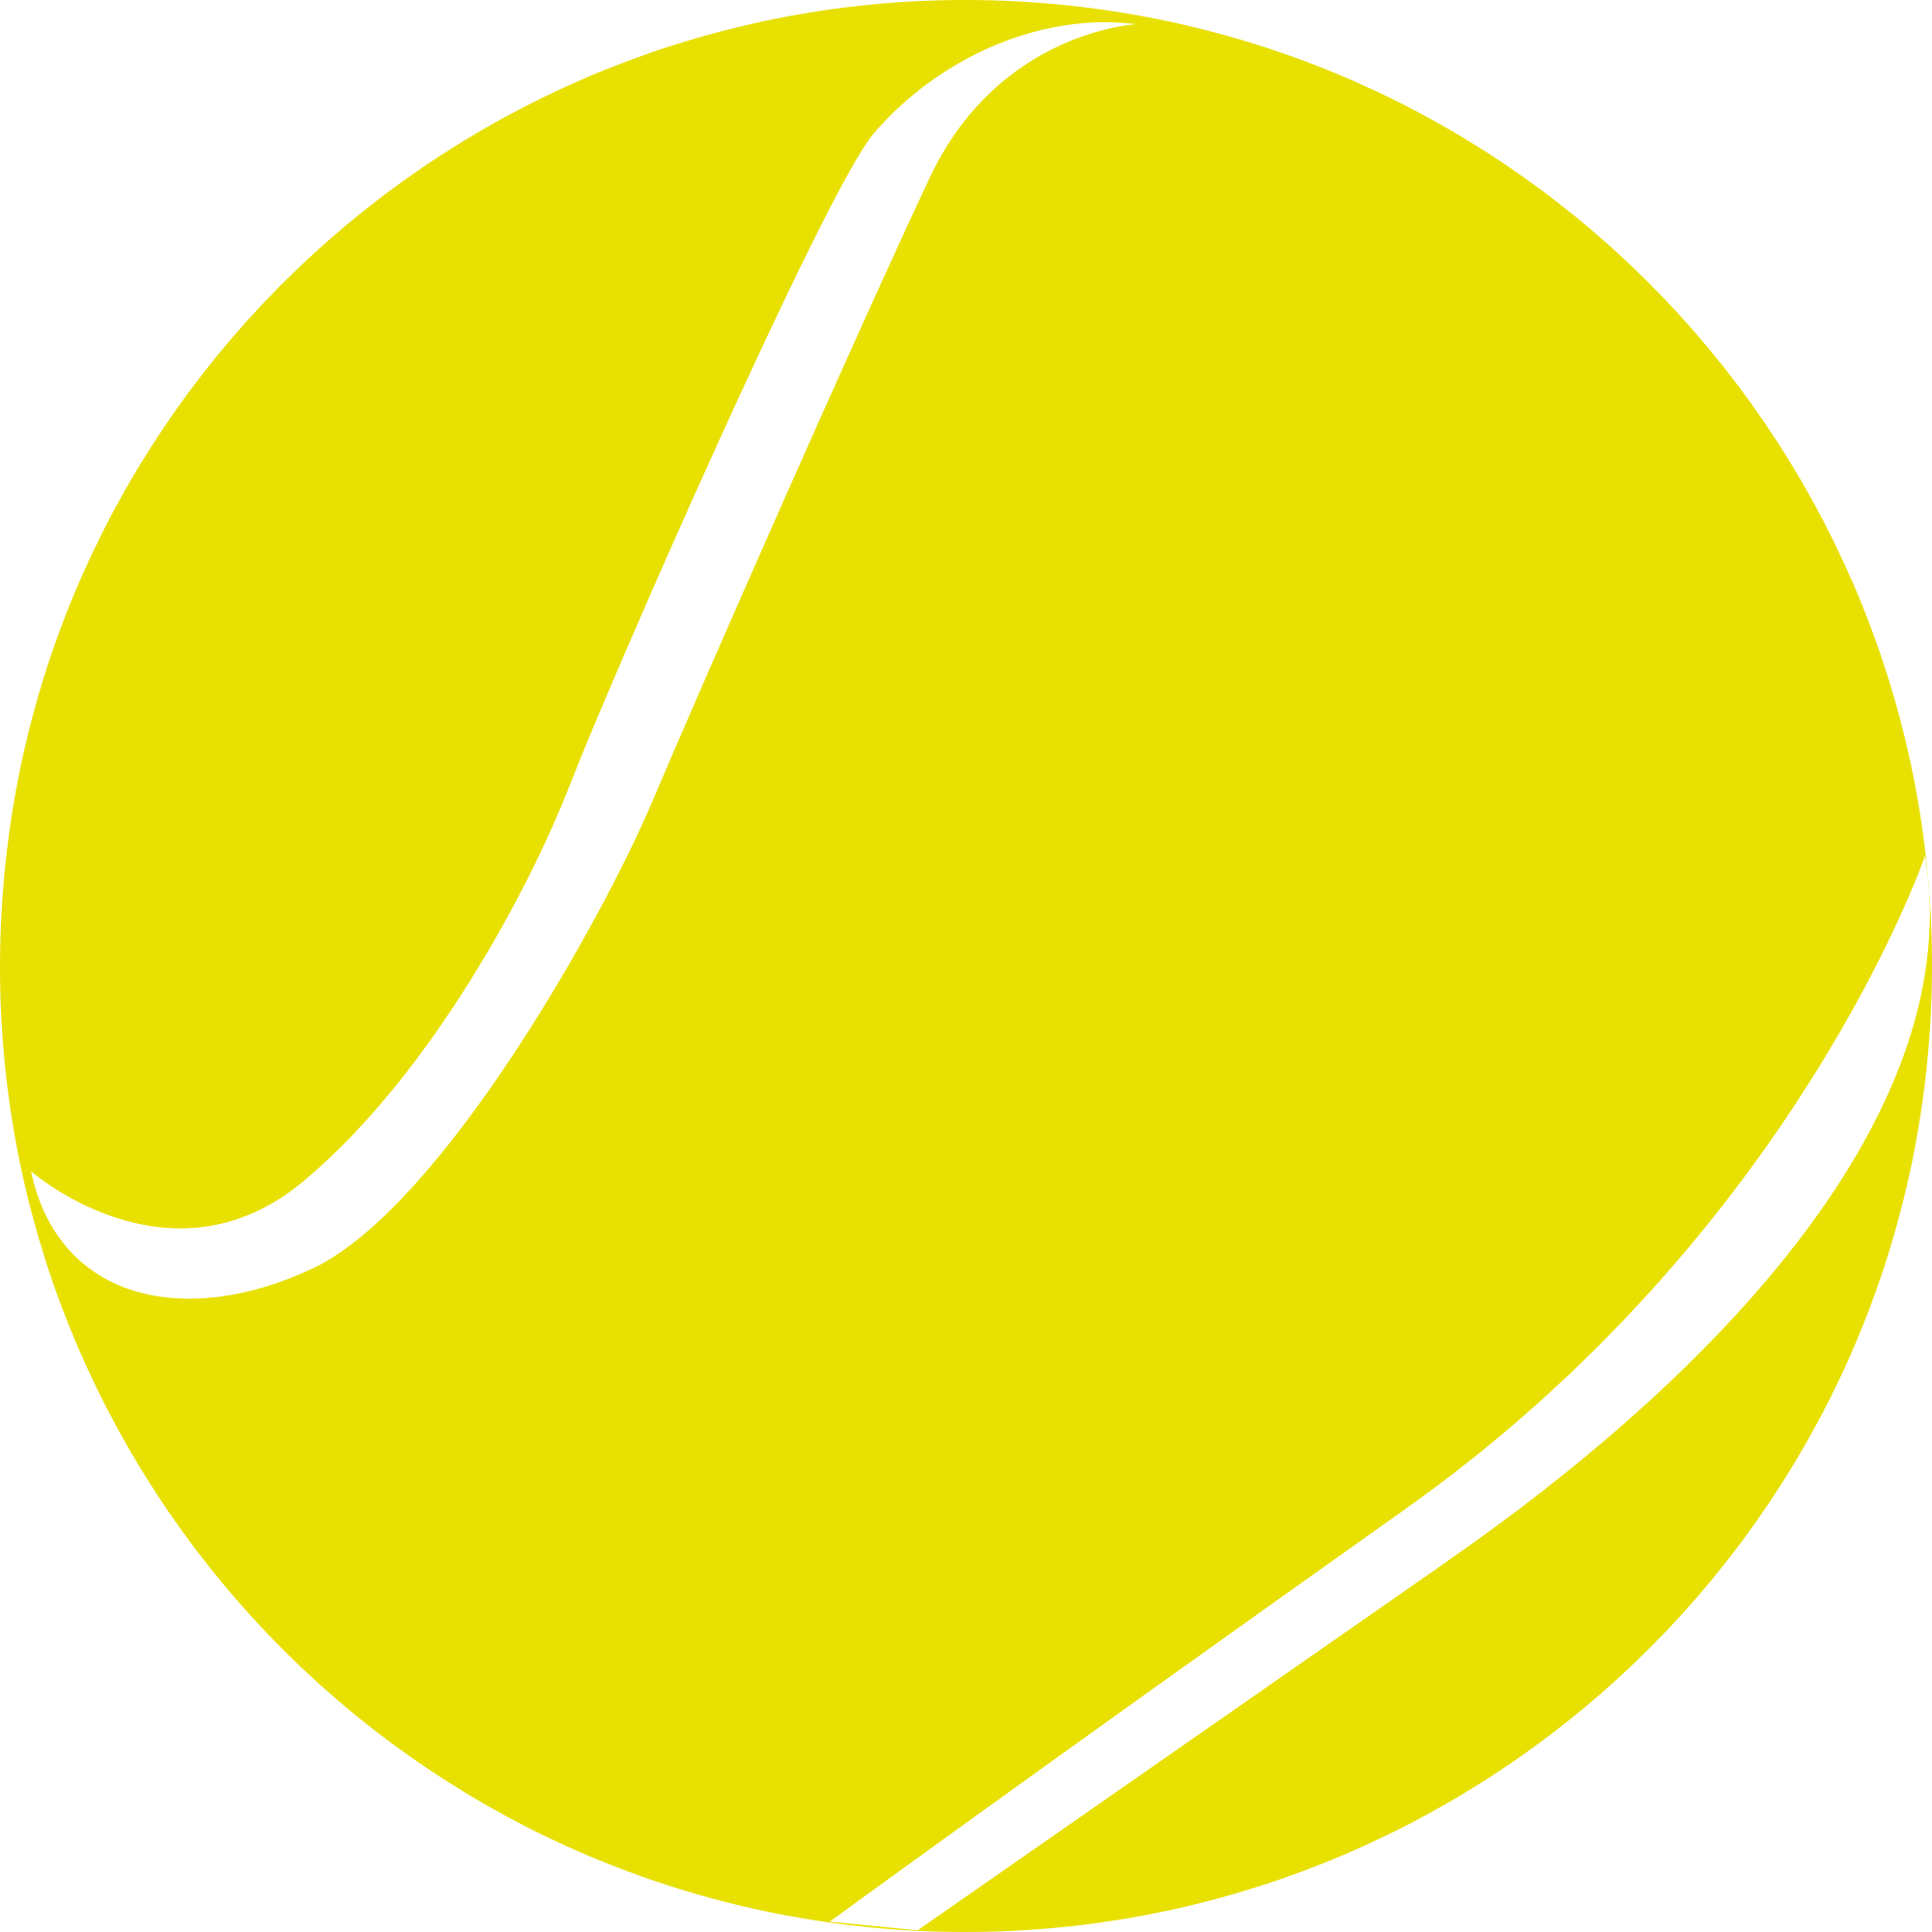 Clipart free tennis.  collection of balls